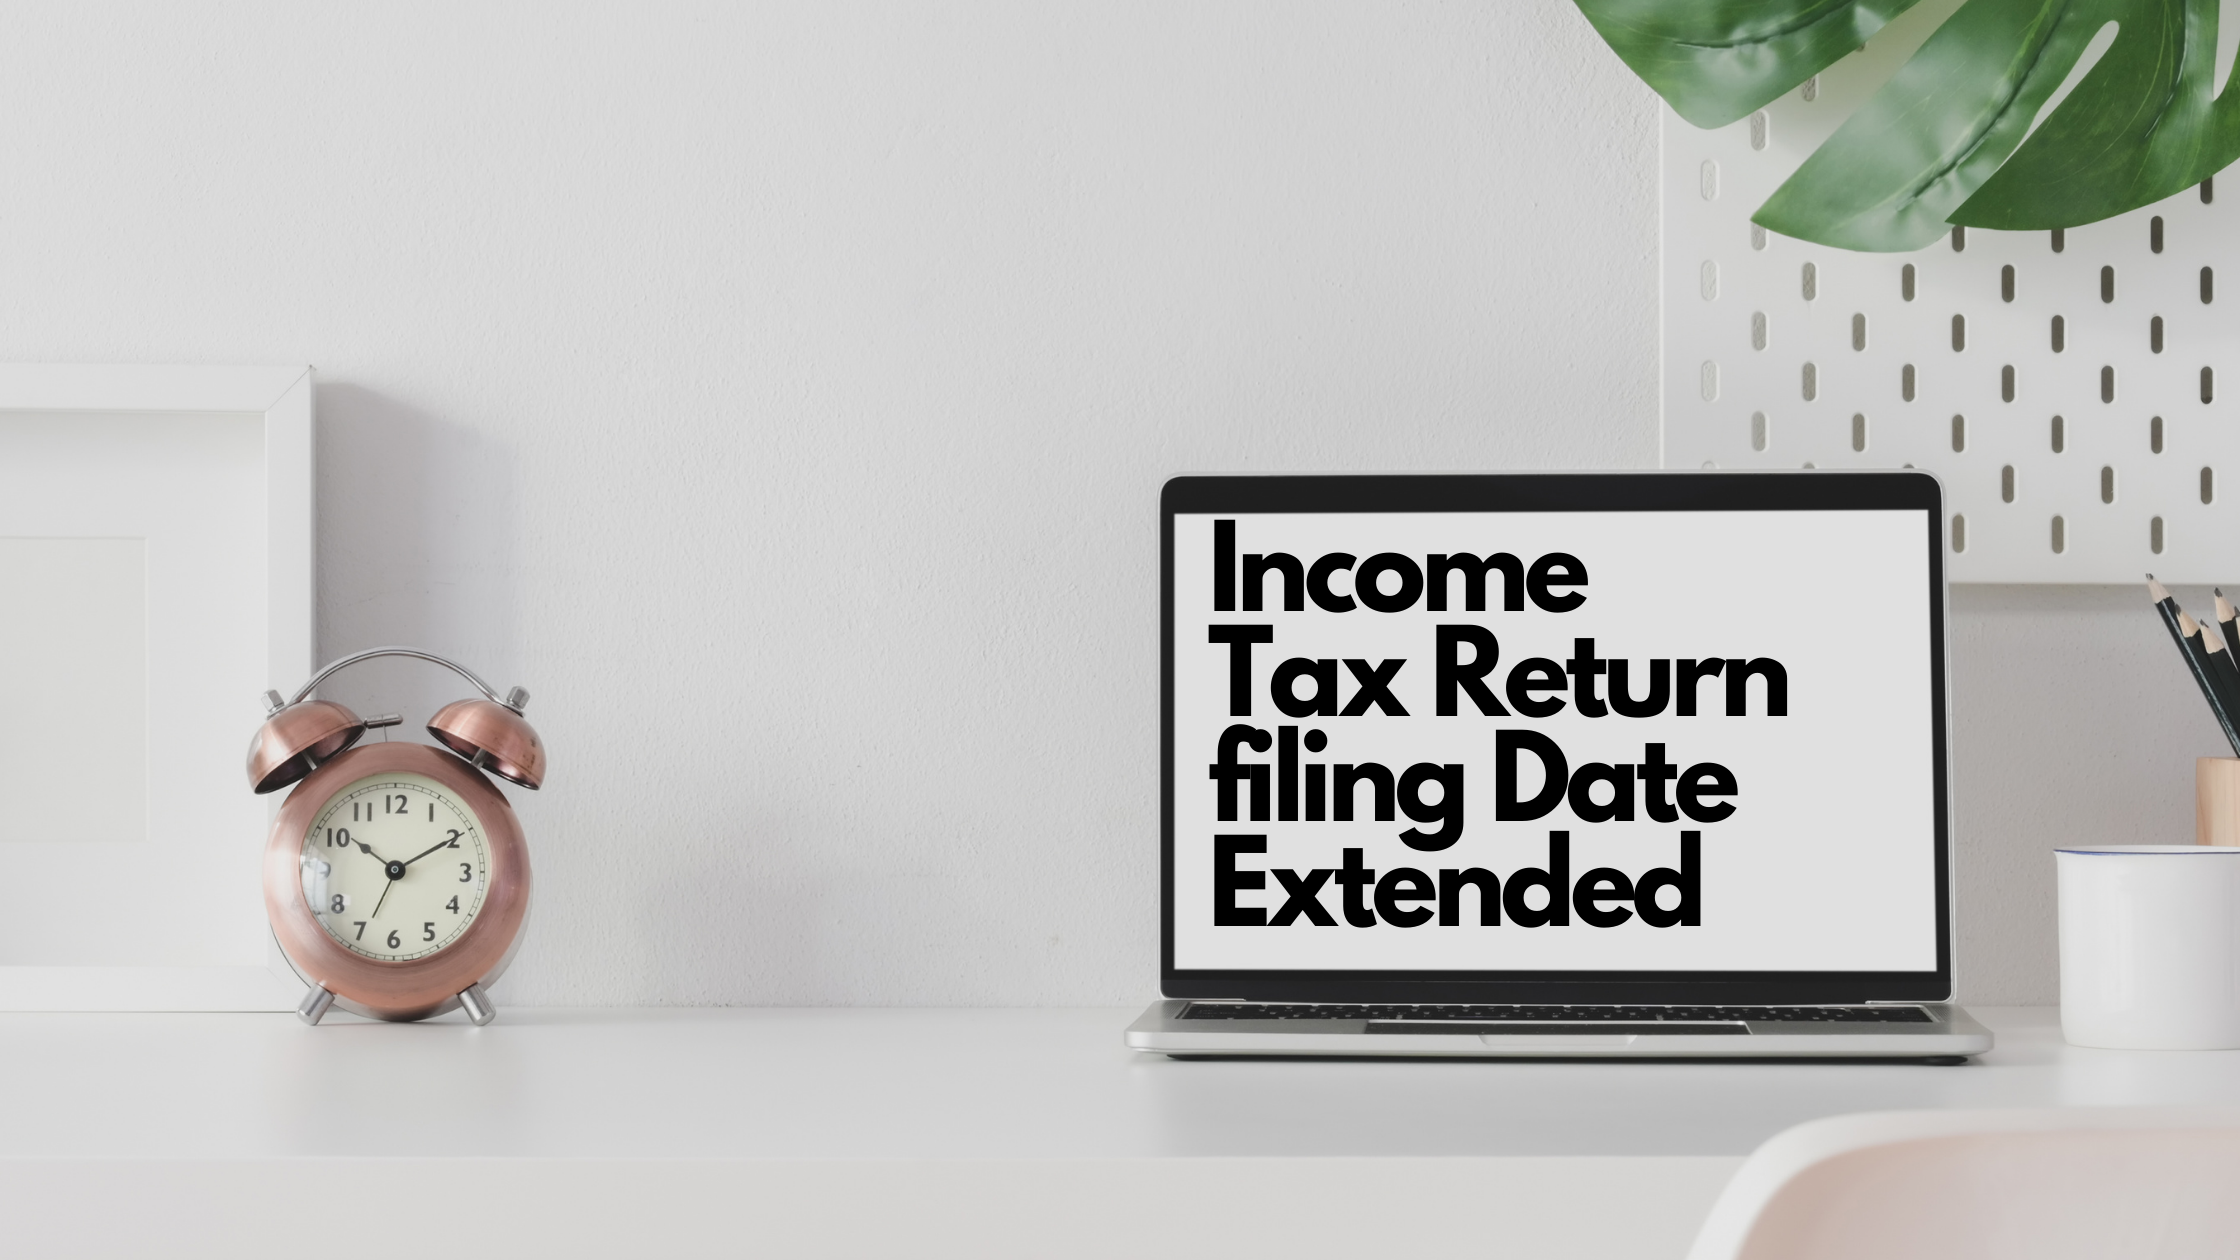 Income Tax Return filing Date